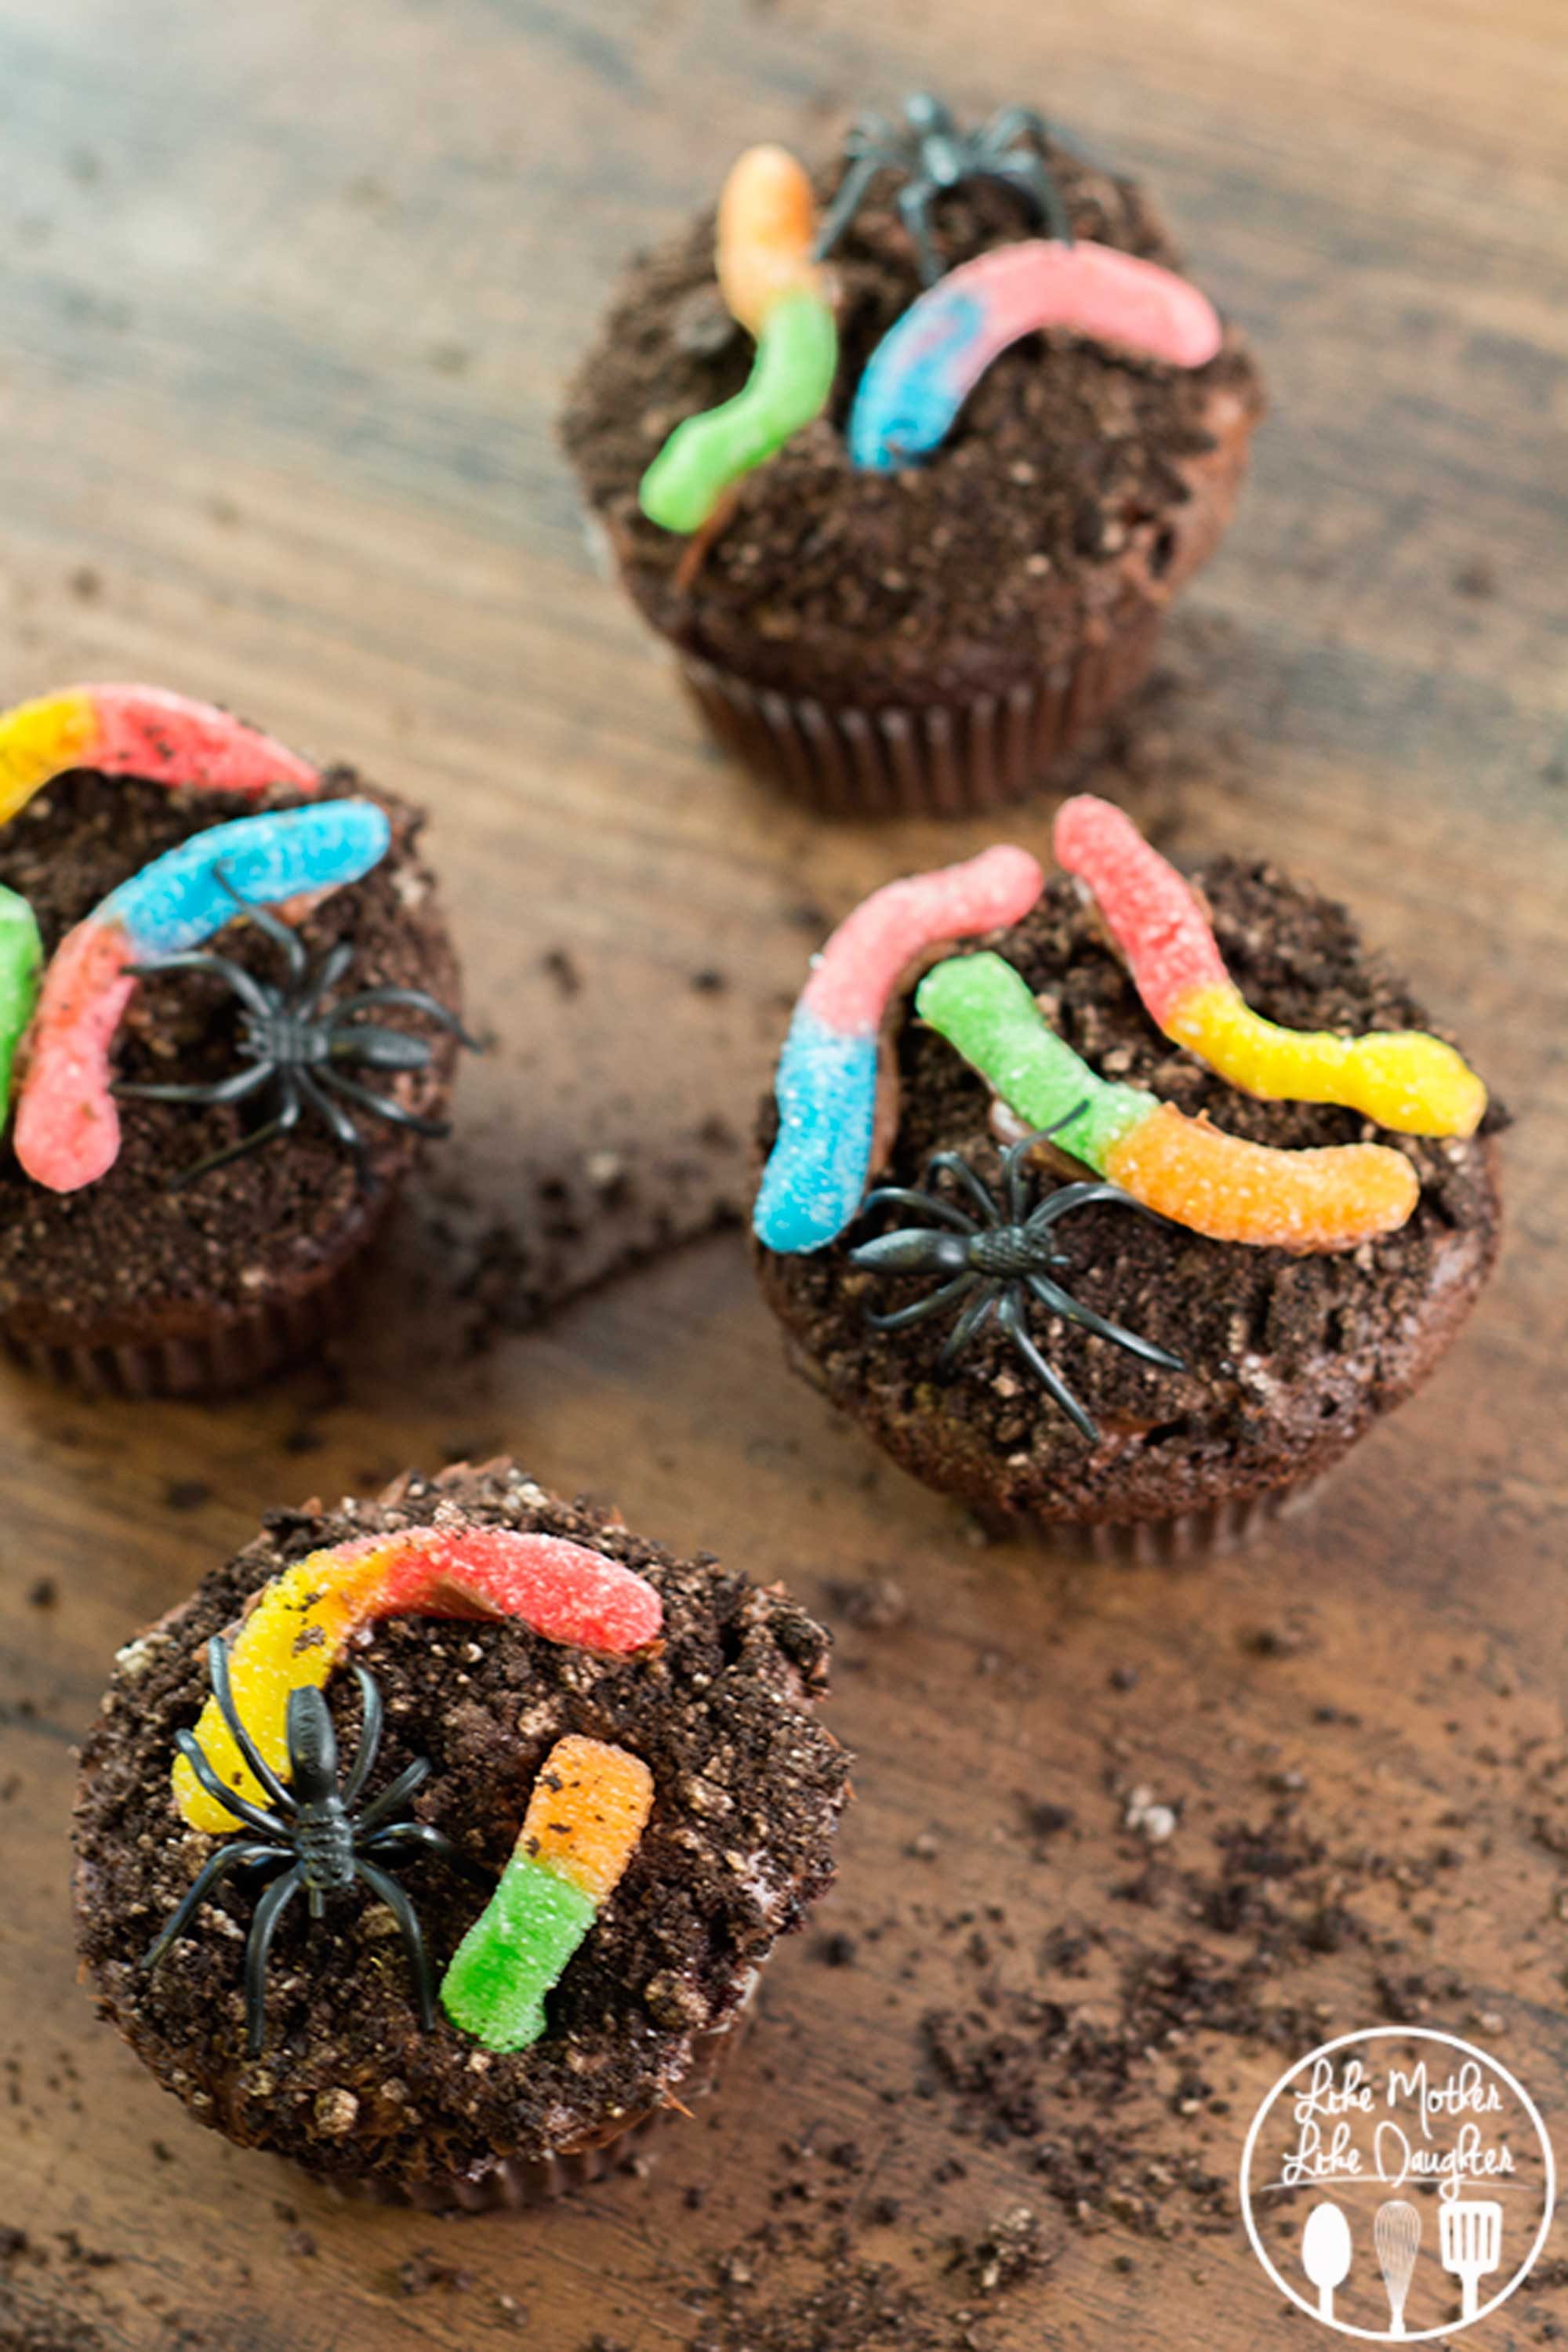 30 halloween cupcake ideas easy recipes for cute halloween cupcakes - Halloween Decorations Cupcakes